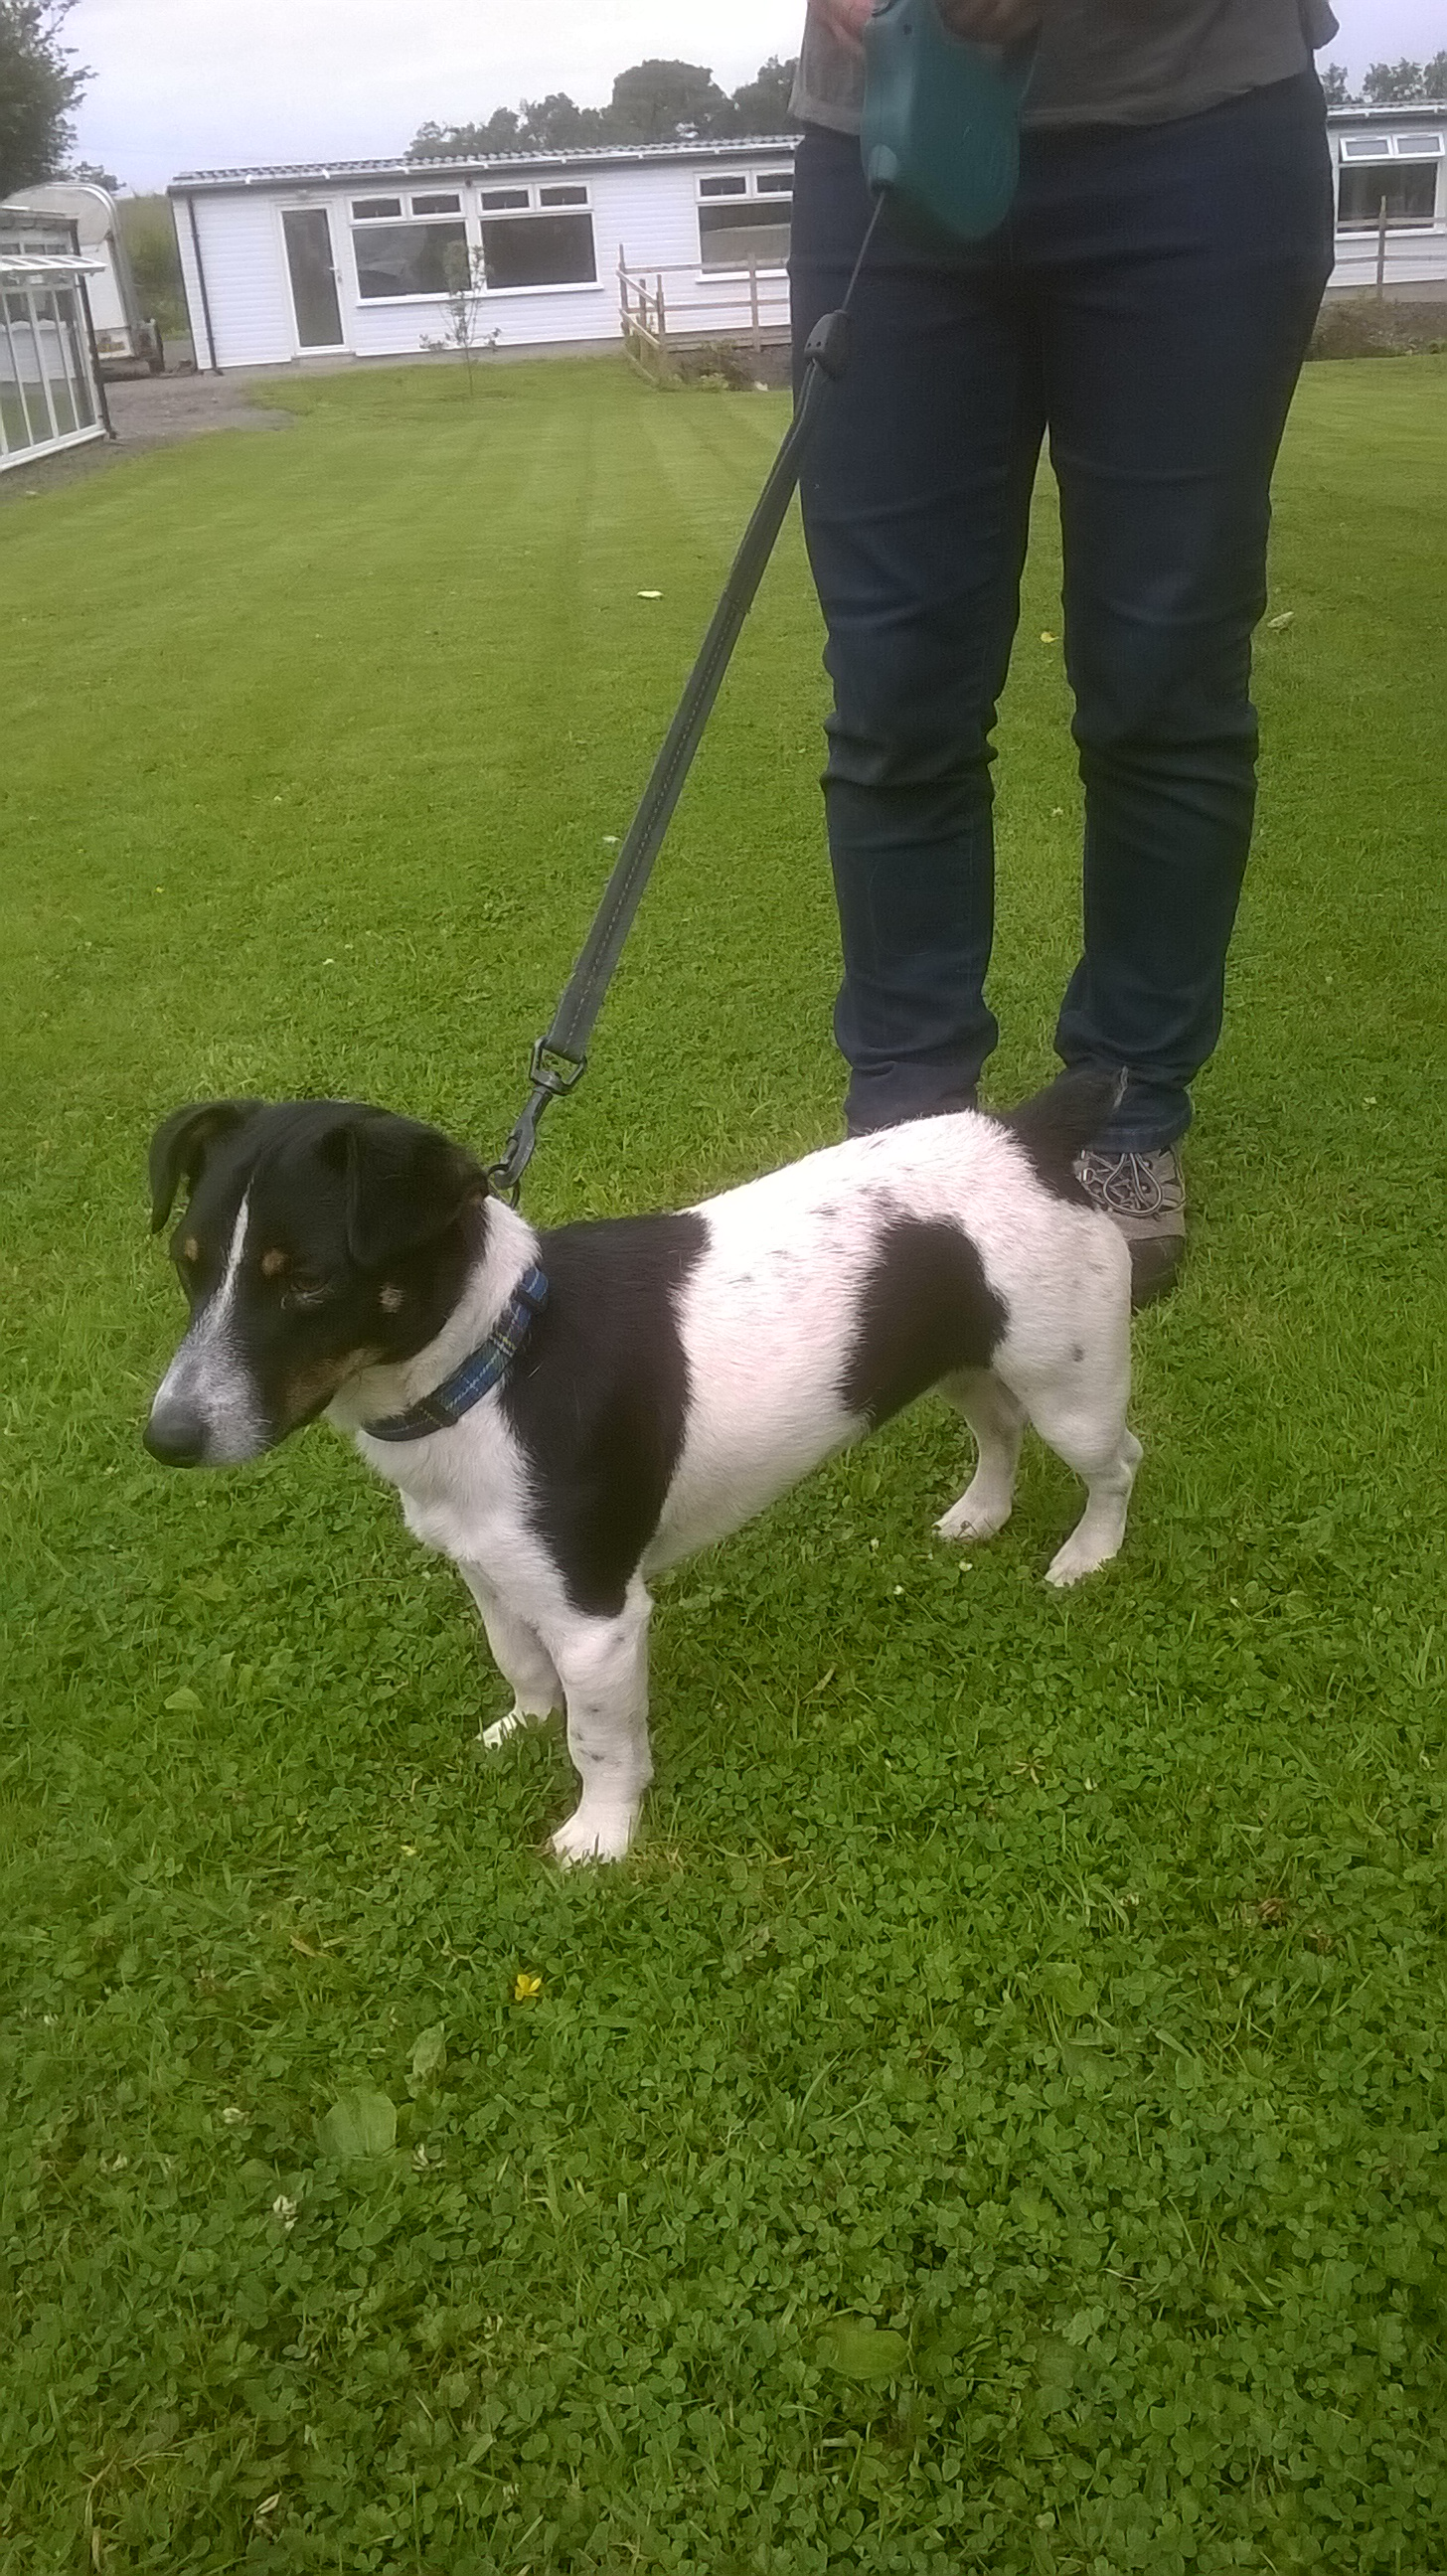 Re-homed: Jock, 11 month old Jack Russell